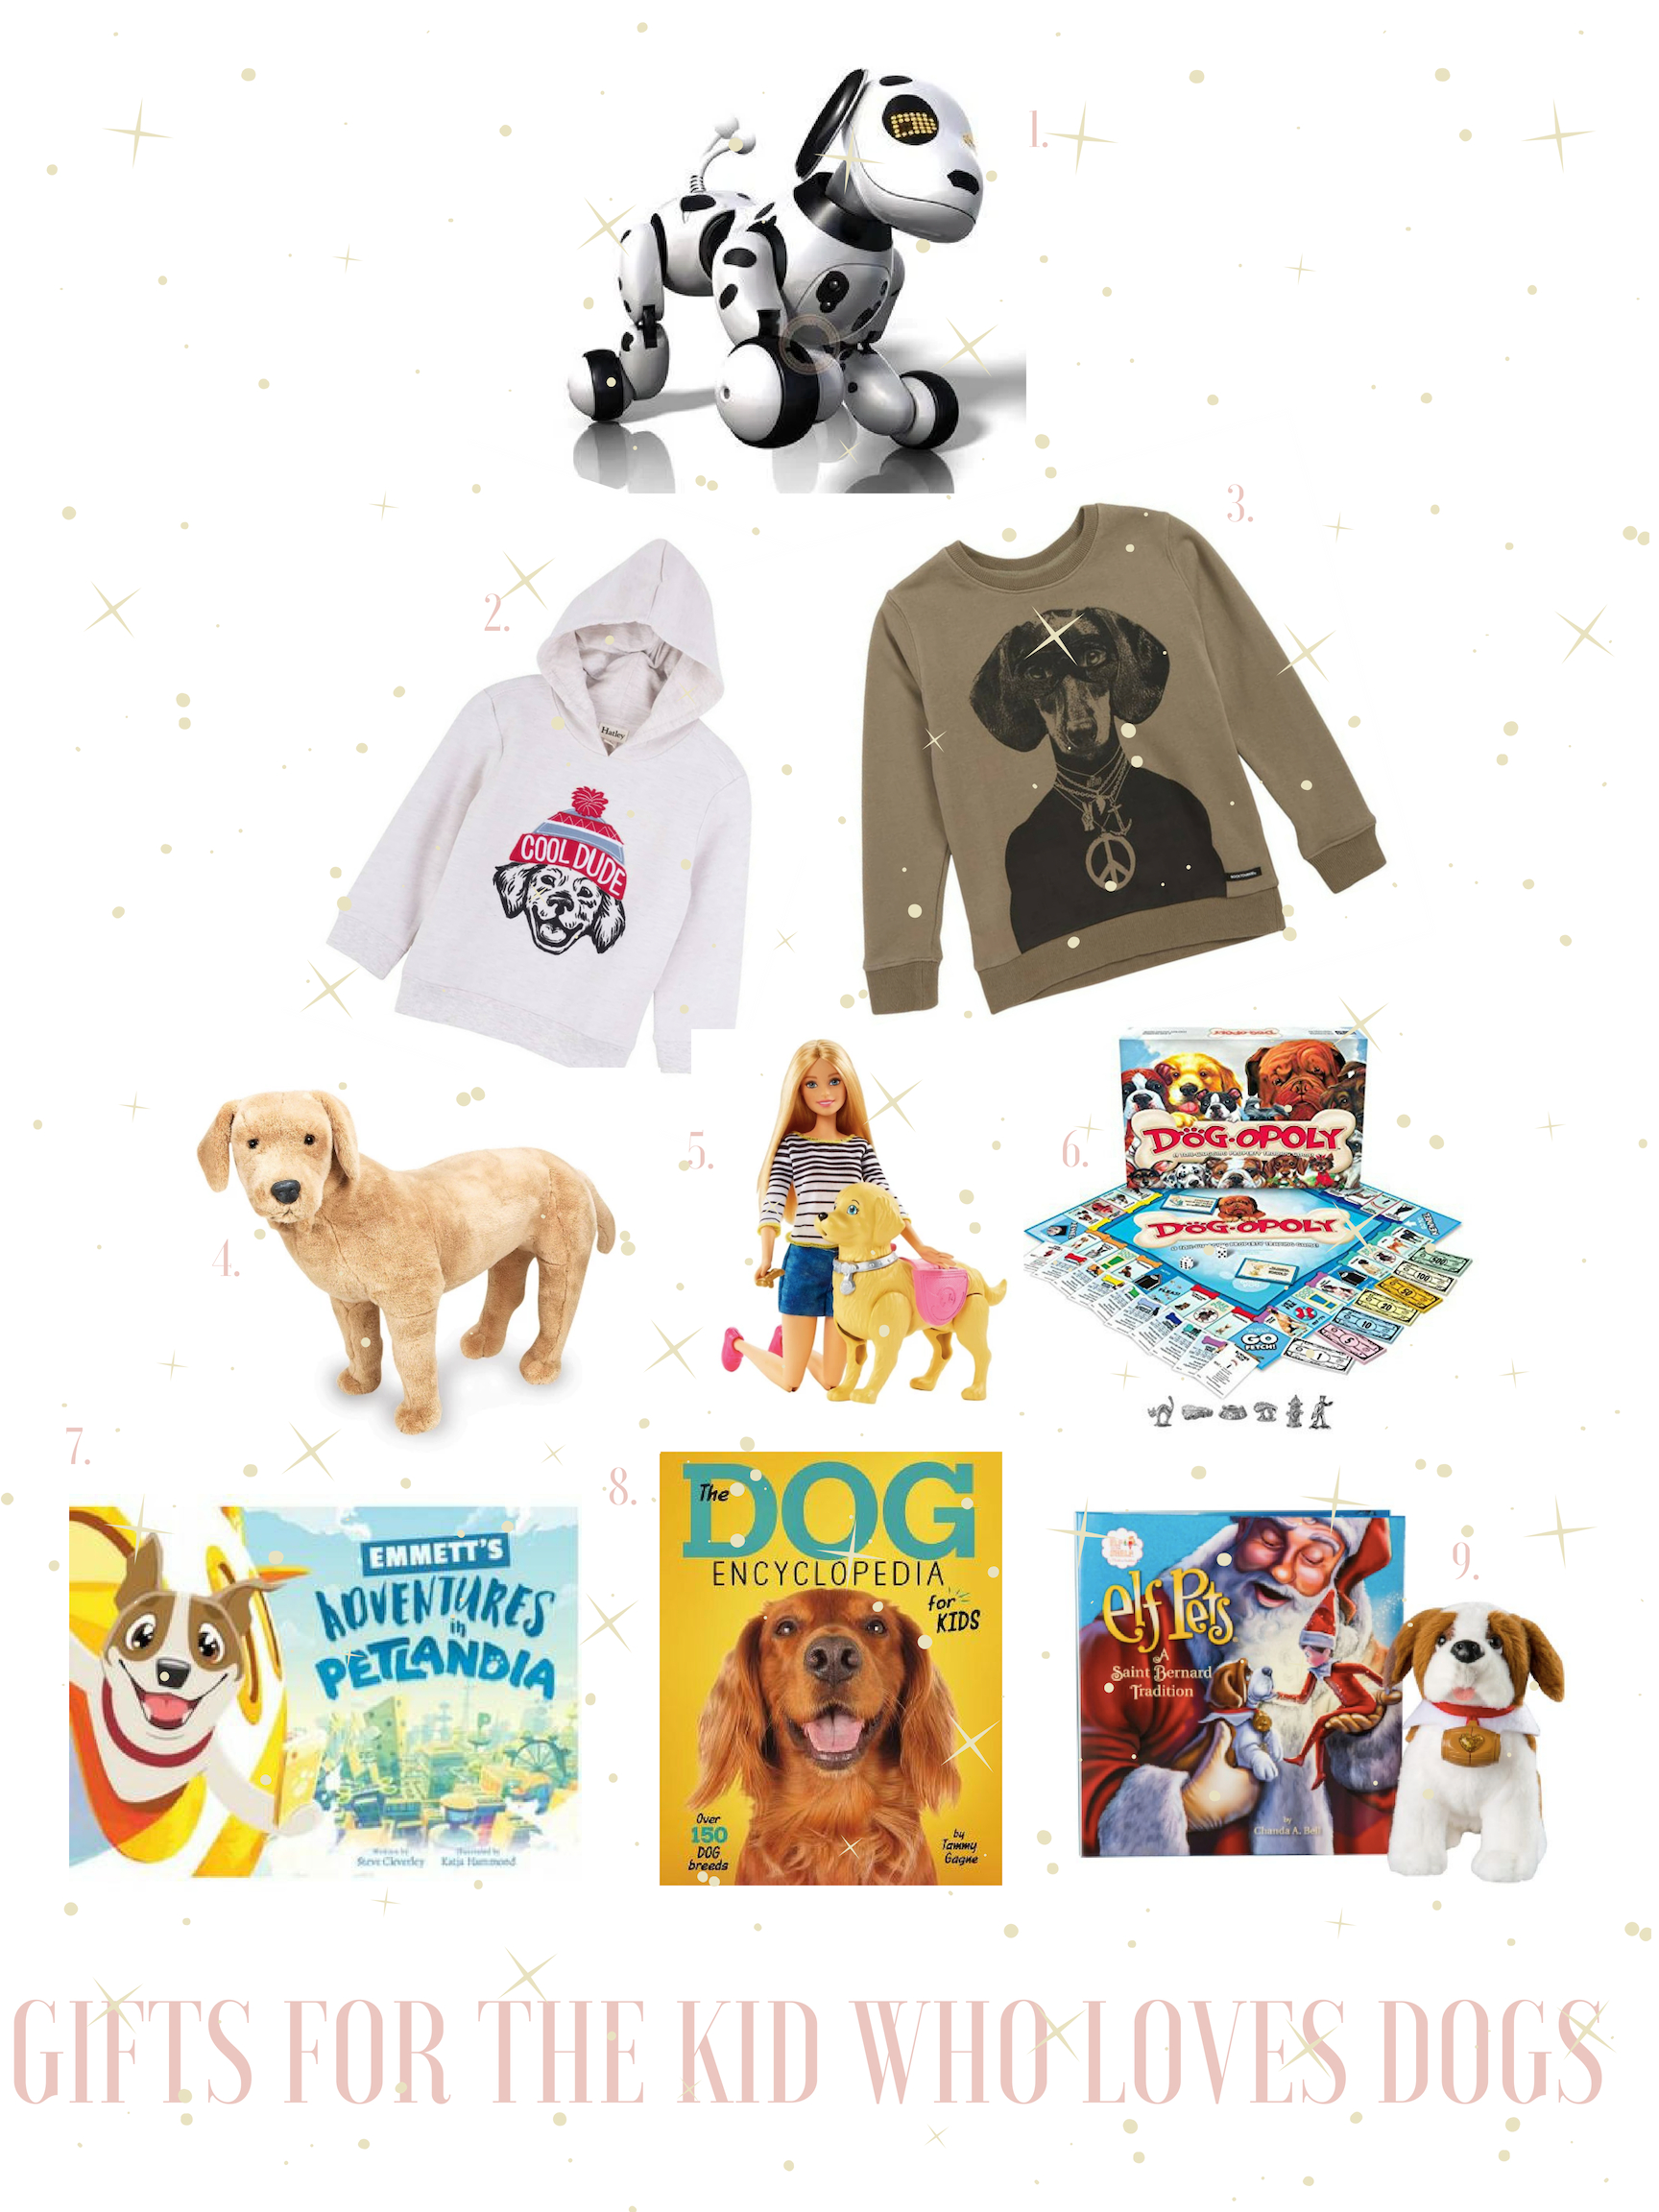 christmas gifts for kids who love dogs gals best friend